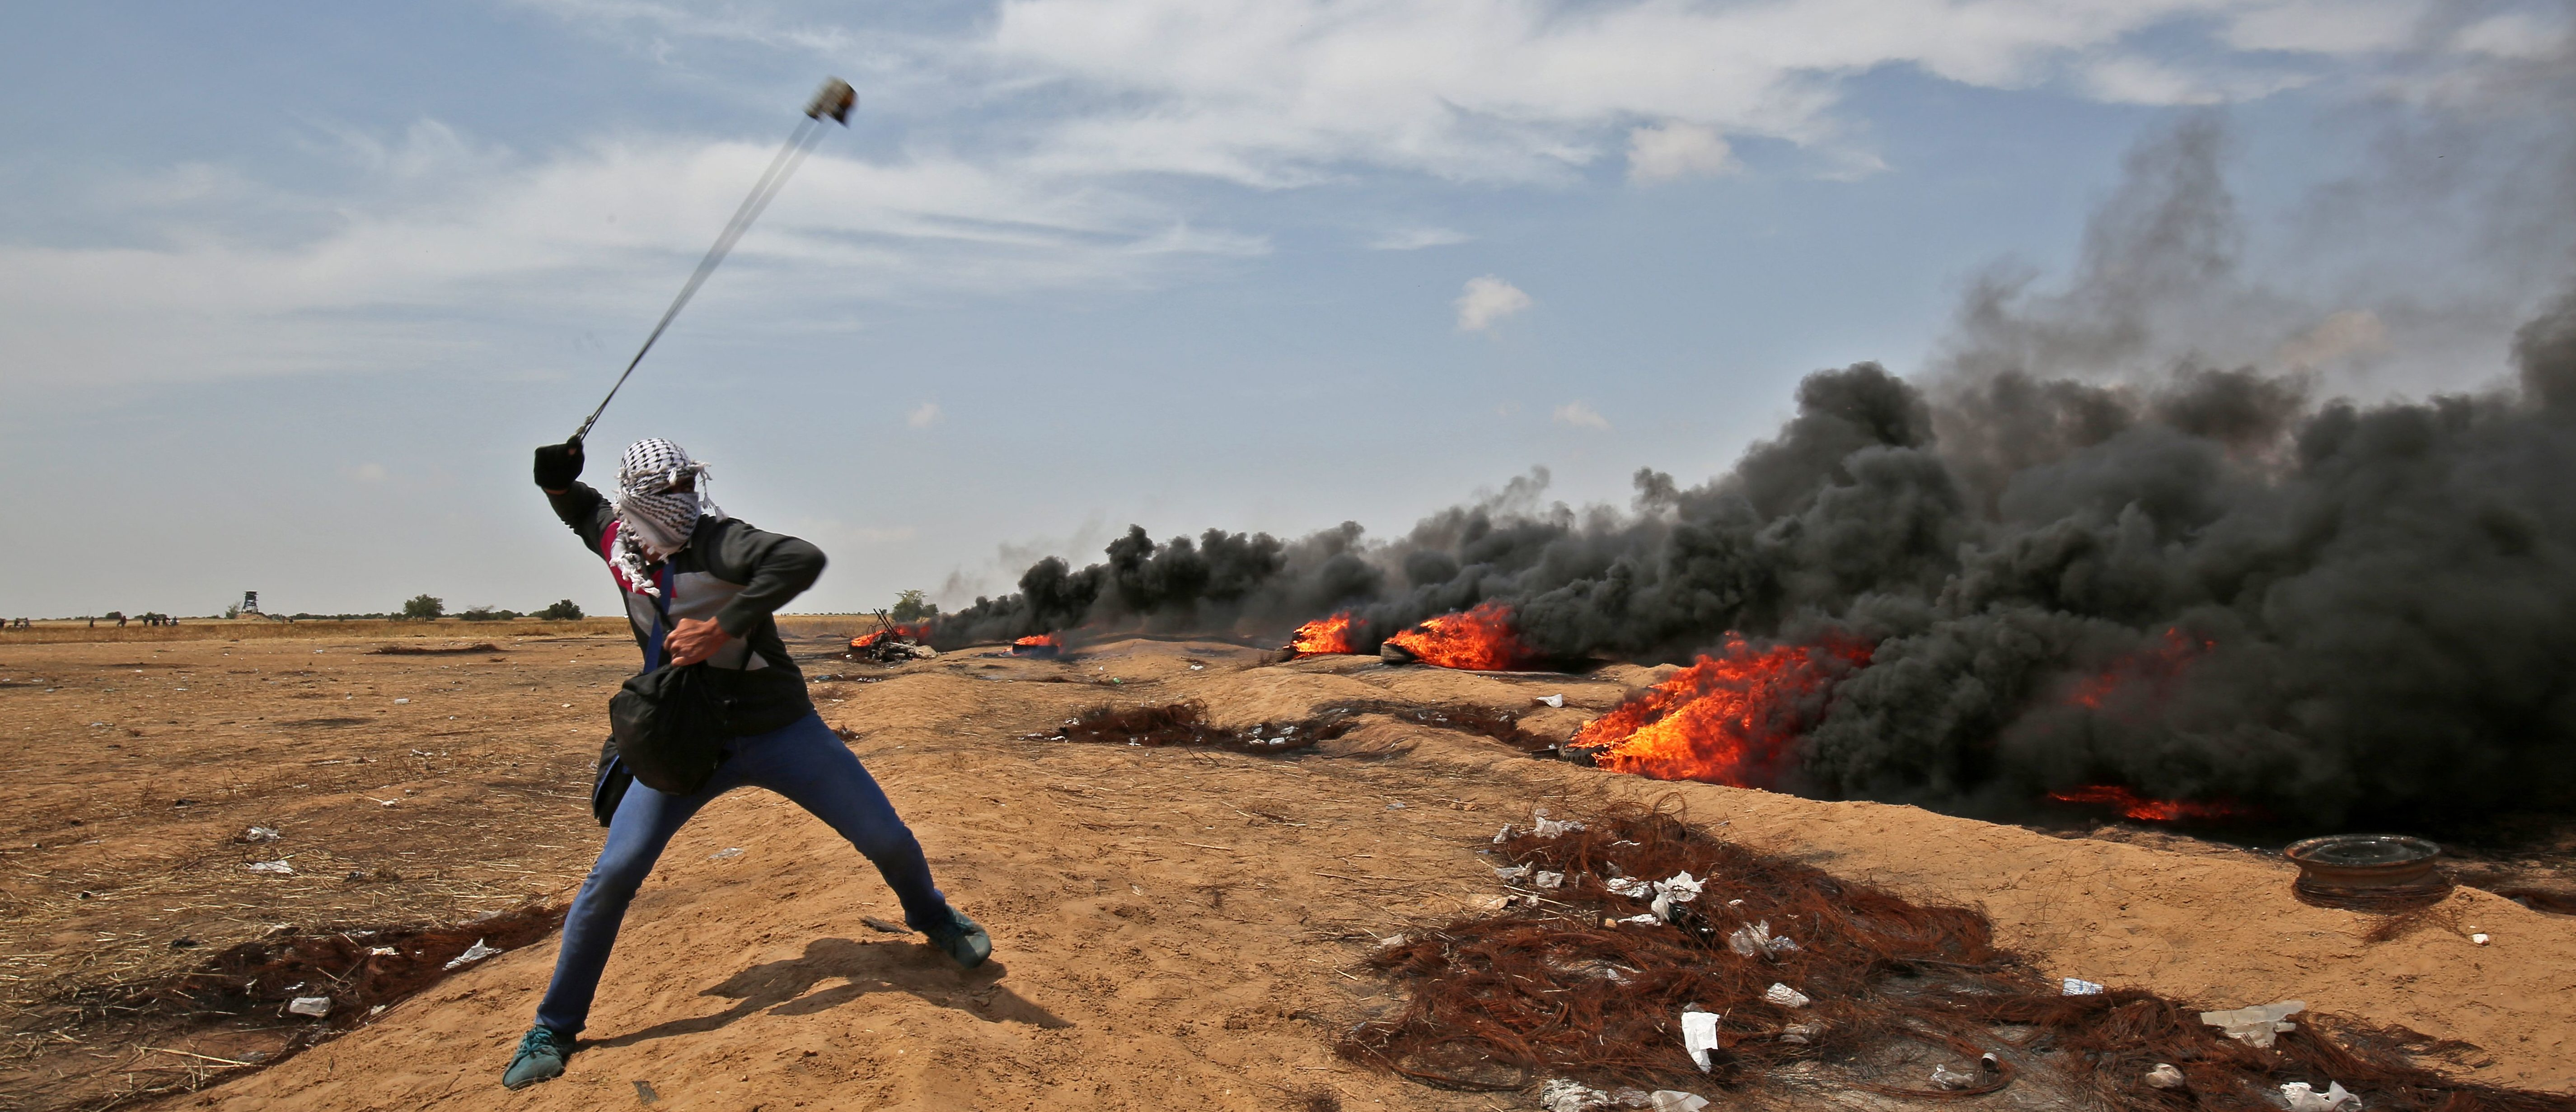 When Someone Tells You The Palestinian Protesters Were Peaceful And Unarmed, Show Them This